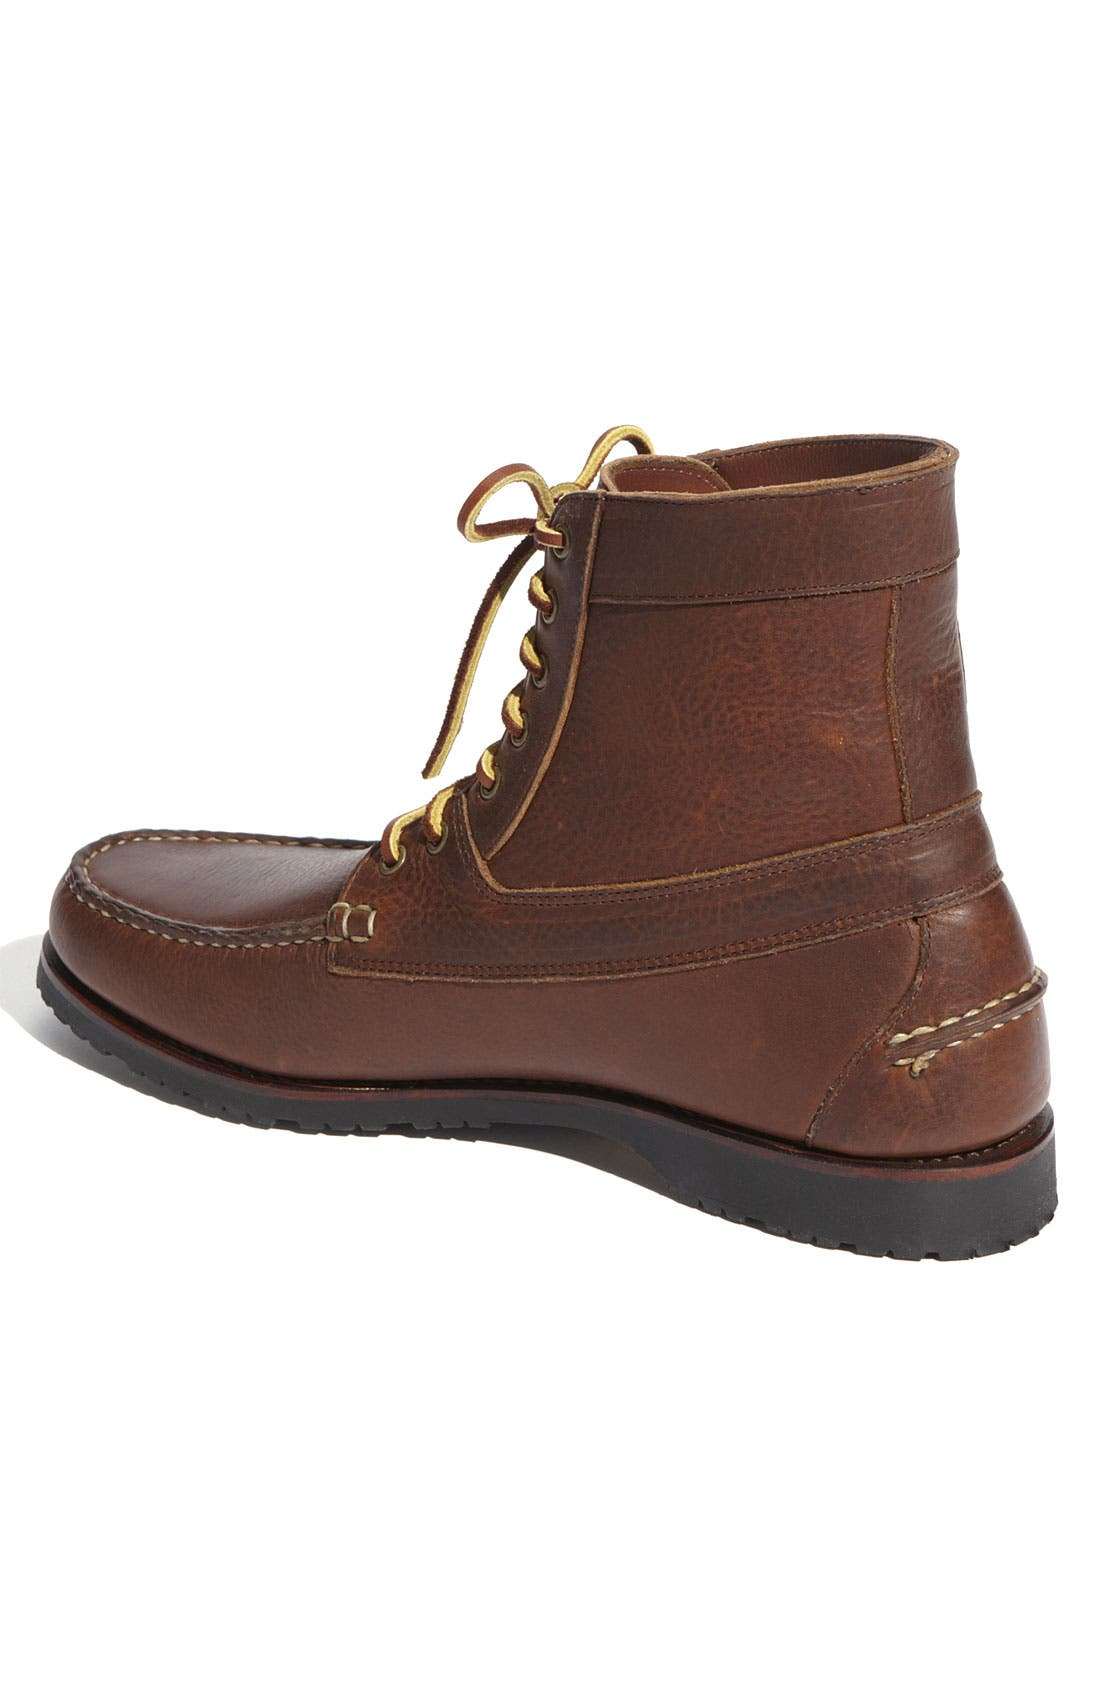 Alternate Image 2  - Allen Edmonds 'Yuma' Boot